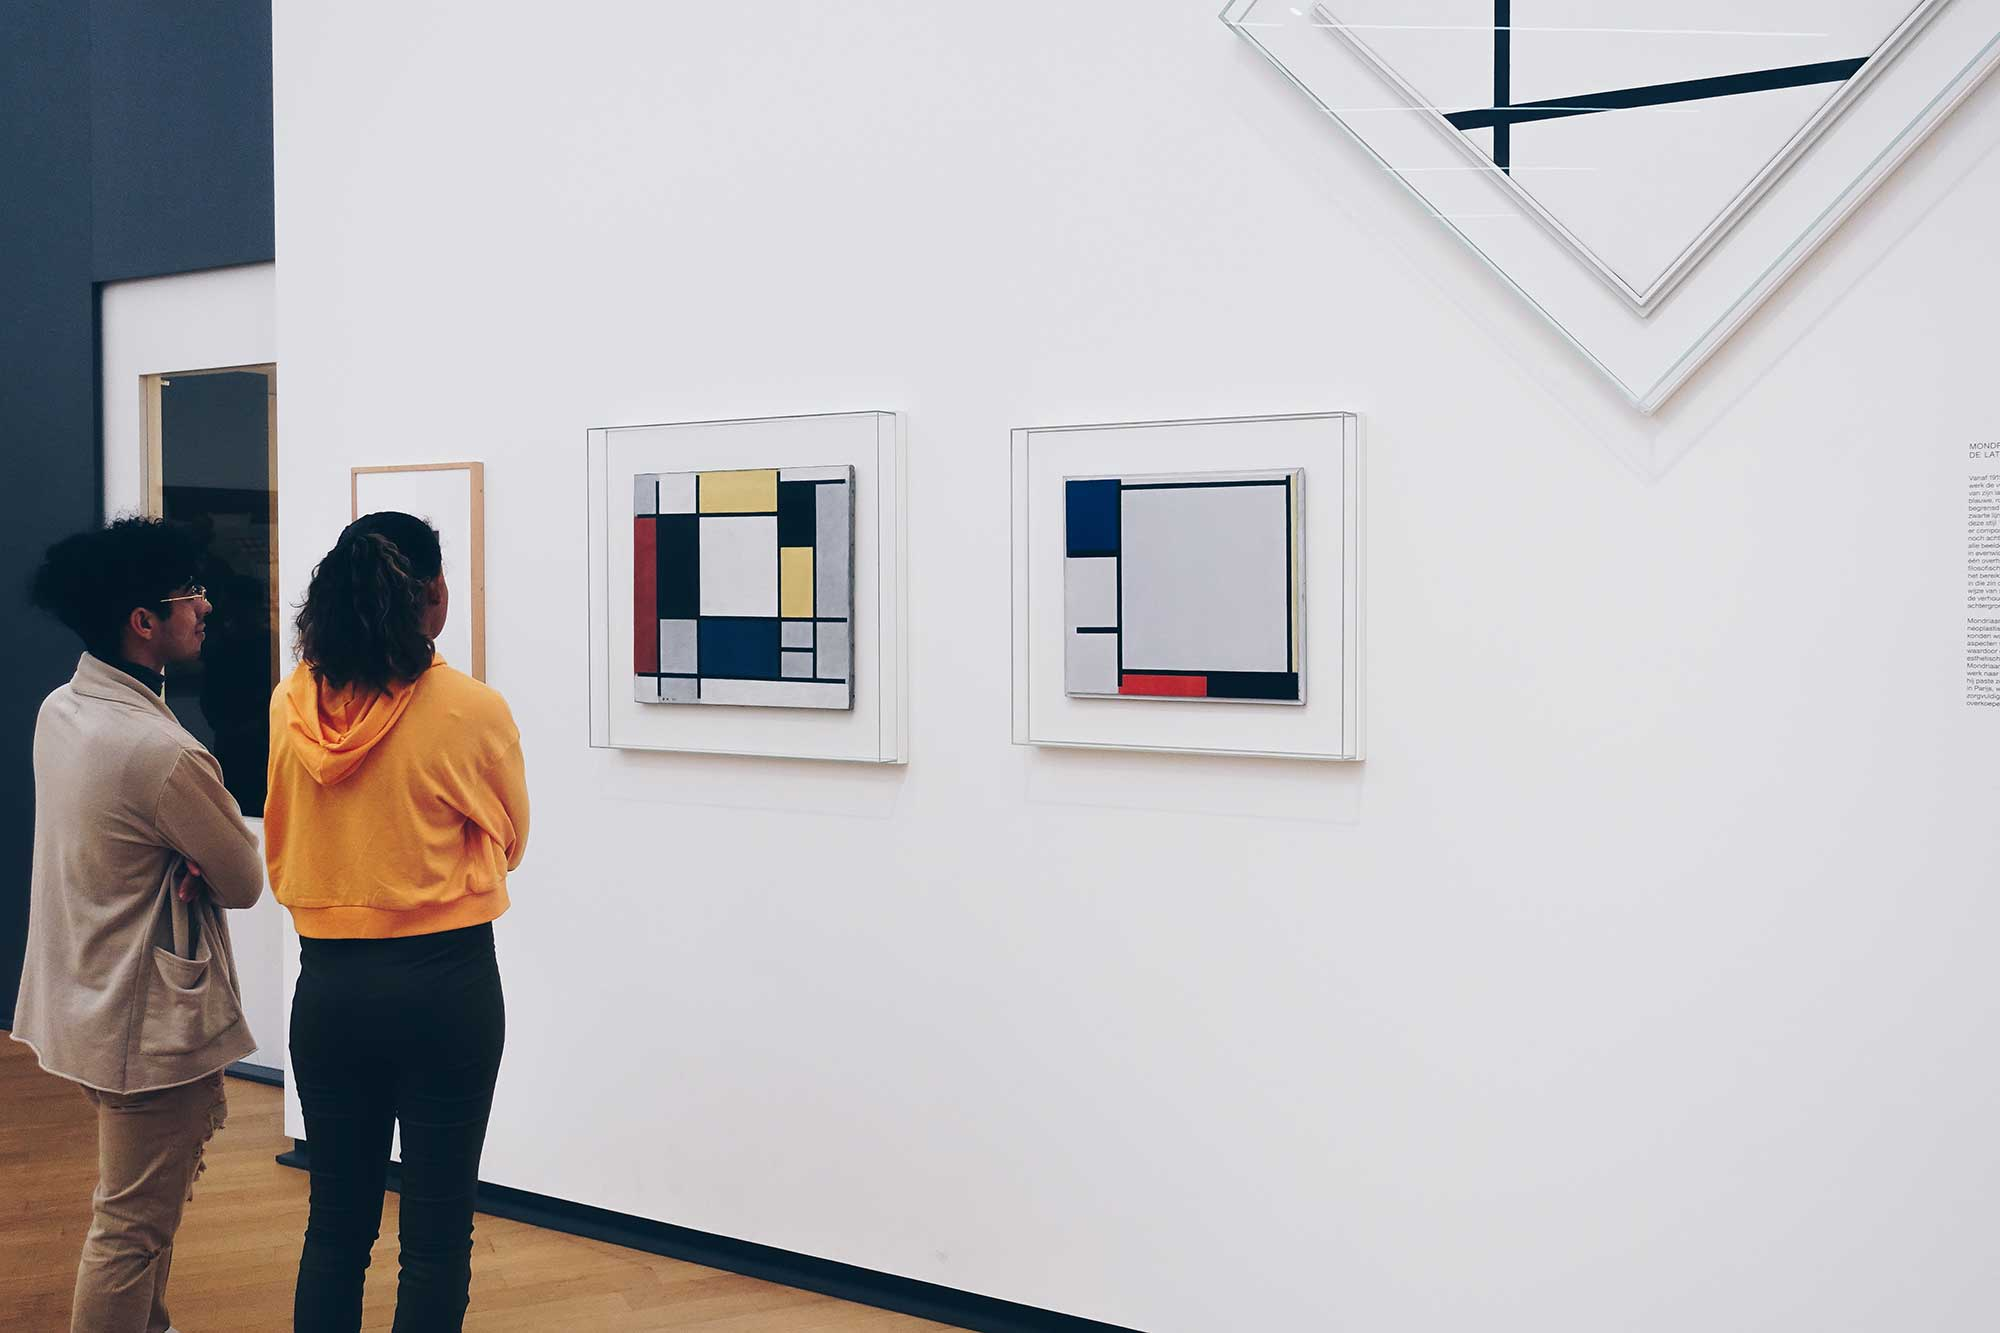 Often Piet Mondrian used the golden ratio to compose his paintings.